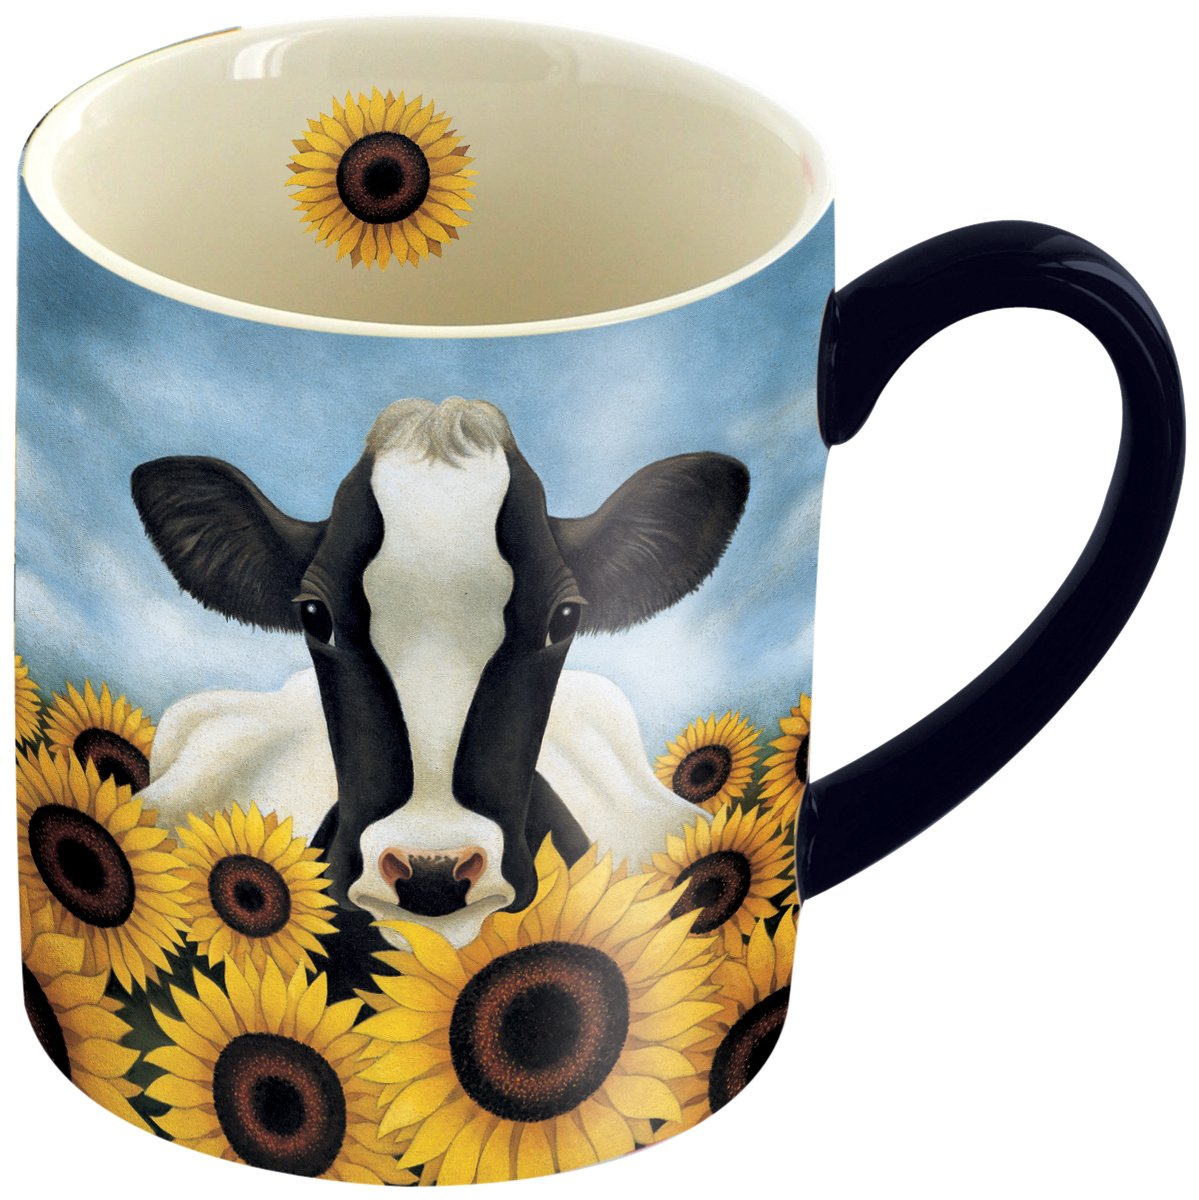 LANG 14 oz. Ceramic Coffee Mug Surrounded by Sunflowers Art by Lowell Herrero - Cow, Sunflowers Country Theme